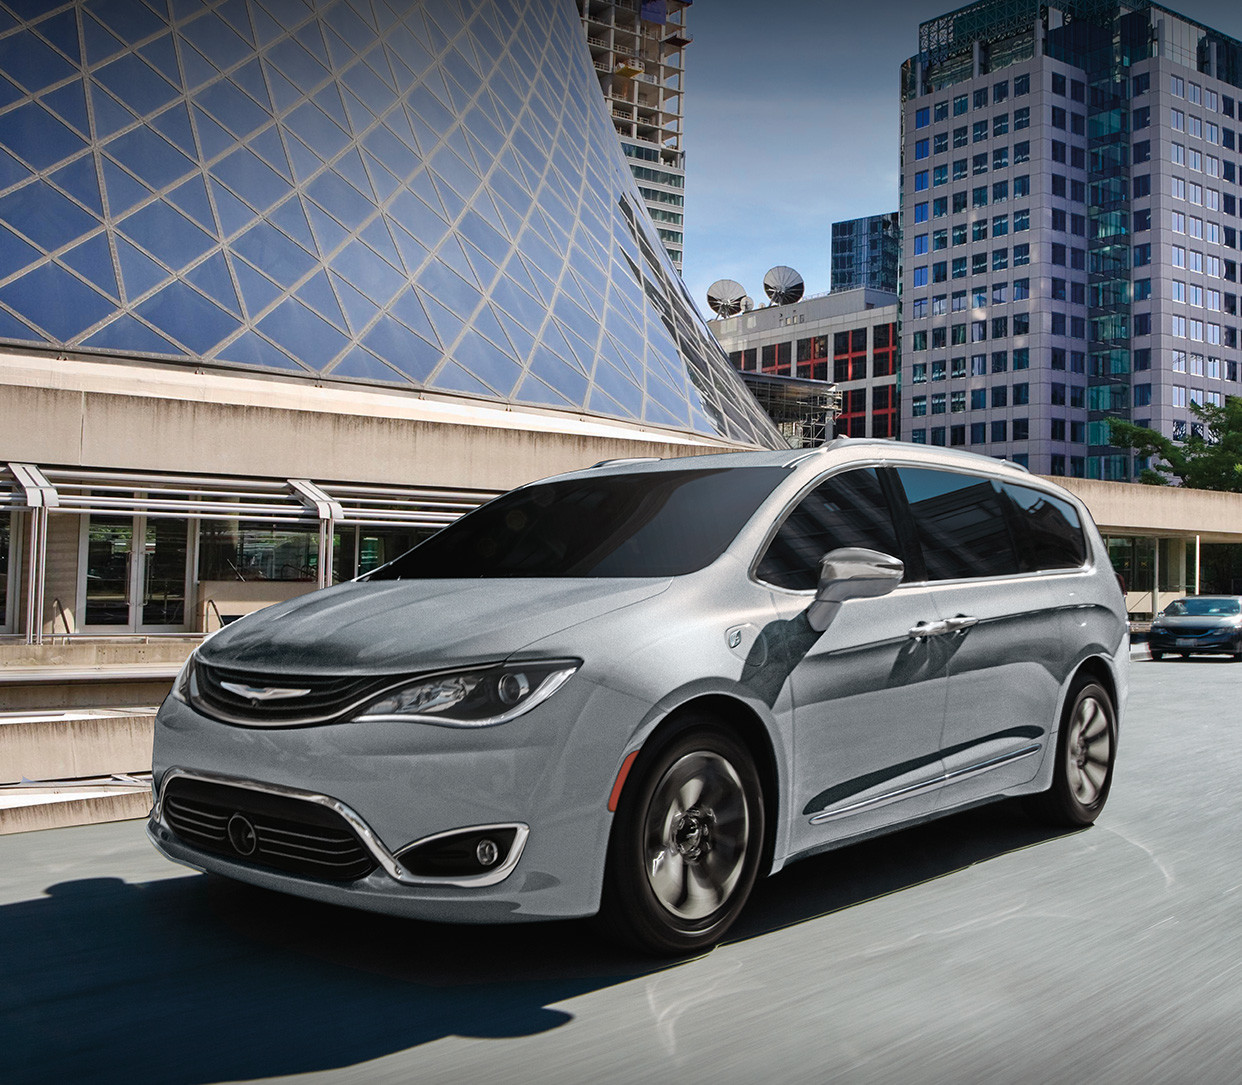 Silver Chrysler Pacifica Driving Through the City